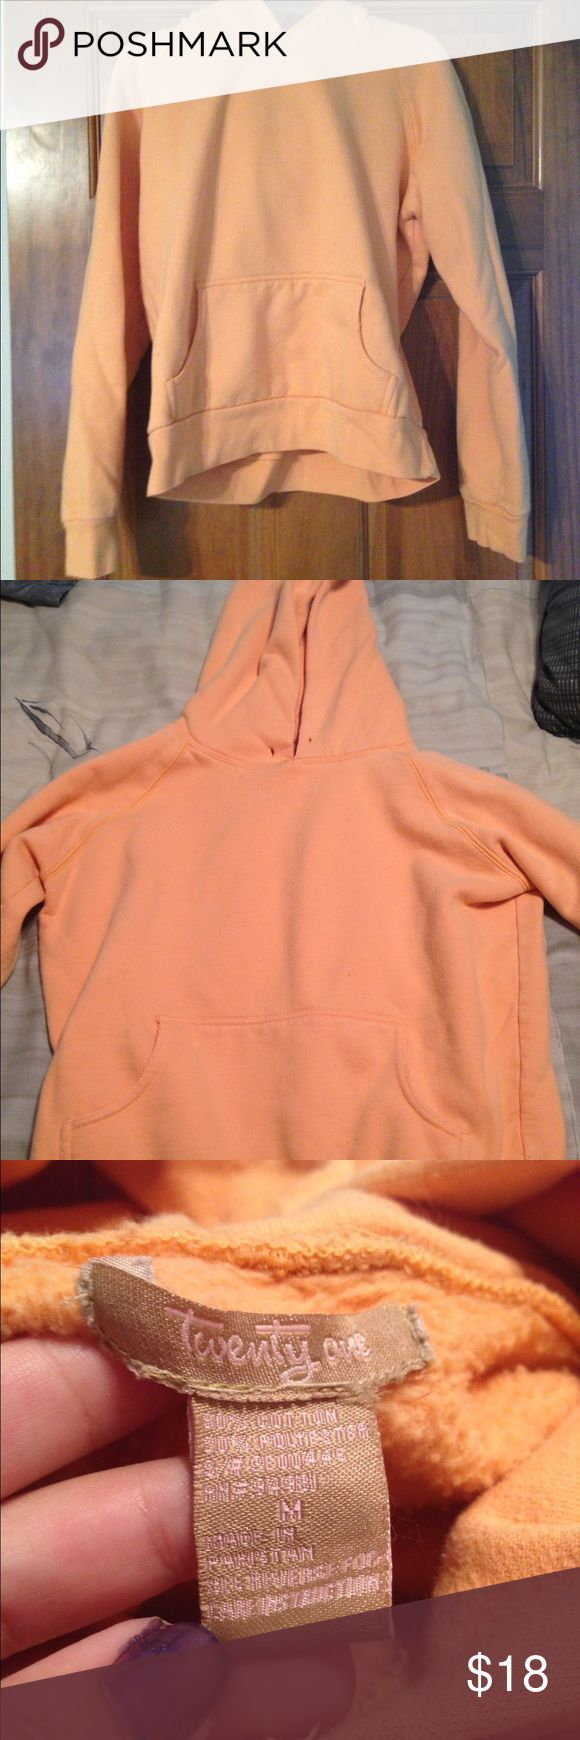 Orange hoodie Orange hoodie with pocket in front. Small hole of hood, not noticeable since it is on the fold. No stains. No strings. Very warm. Girls sz M. Twenty one Tops Sweatshirts & Hoodies